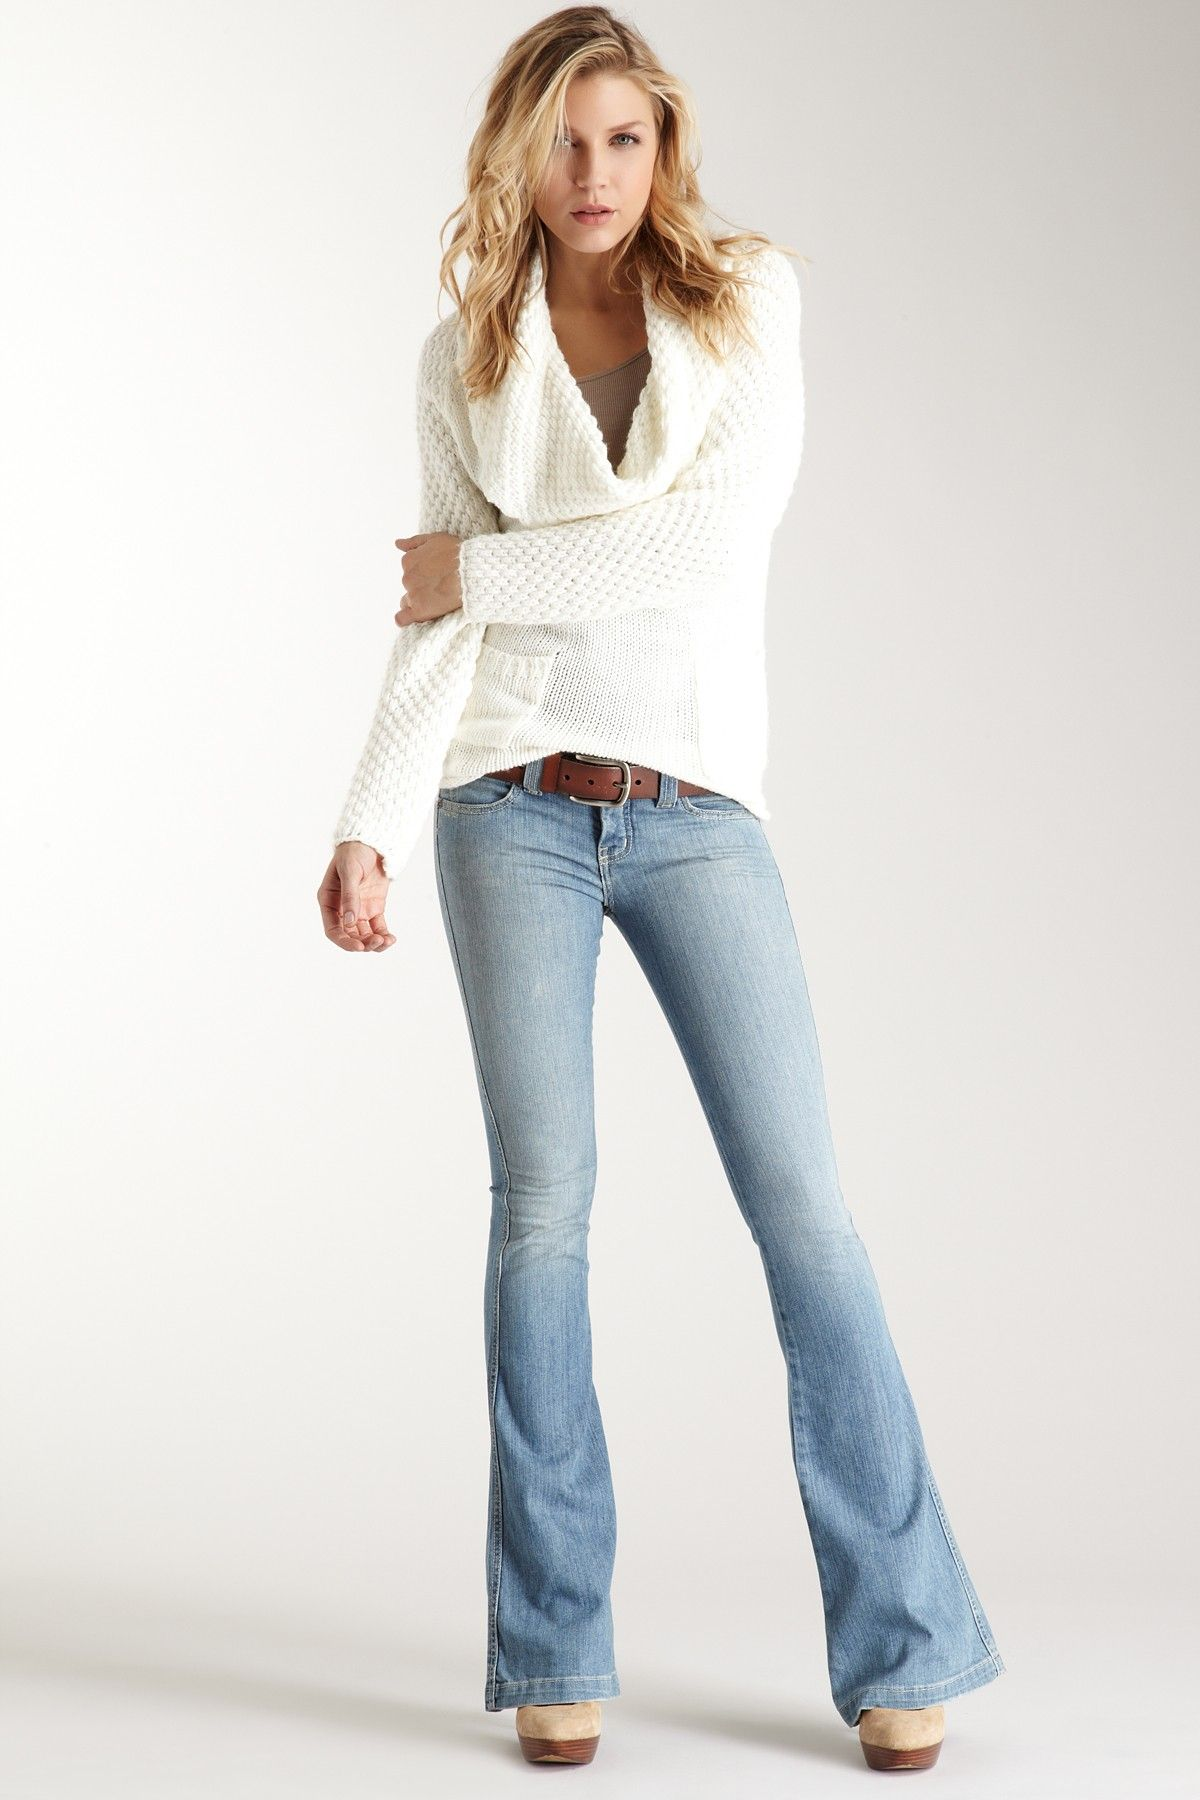 frankie b limited edition famous bootcut midrise jean on